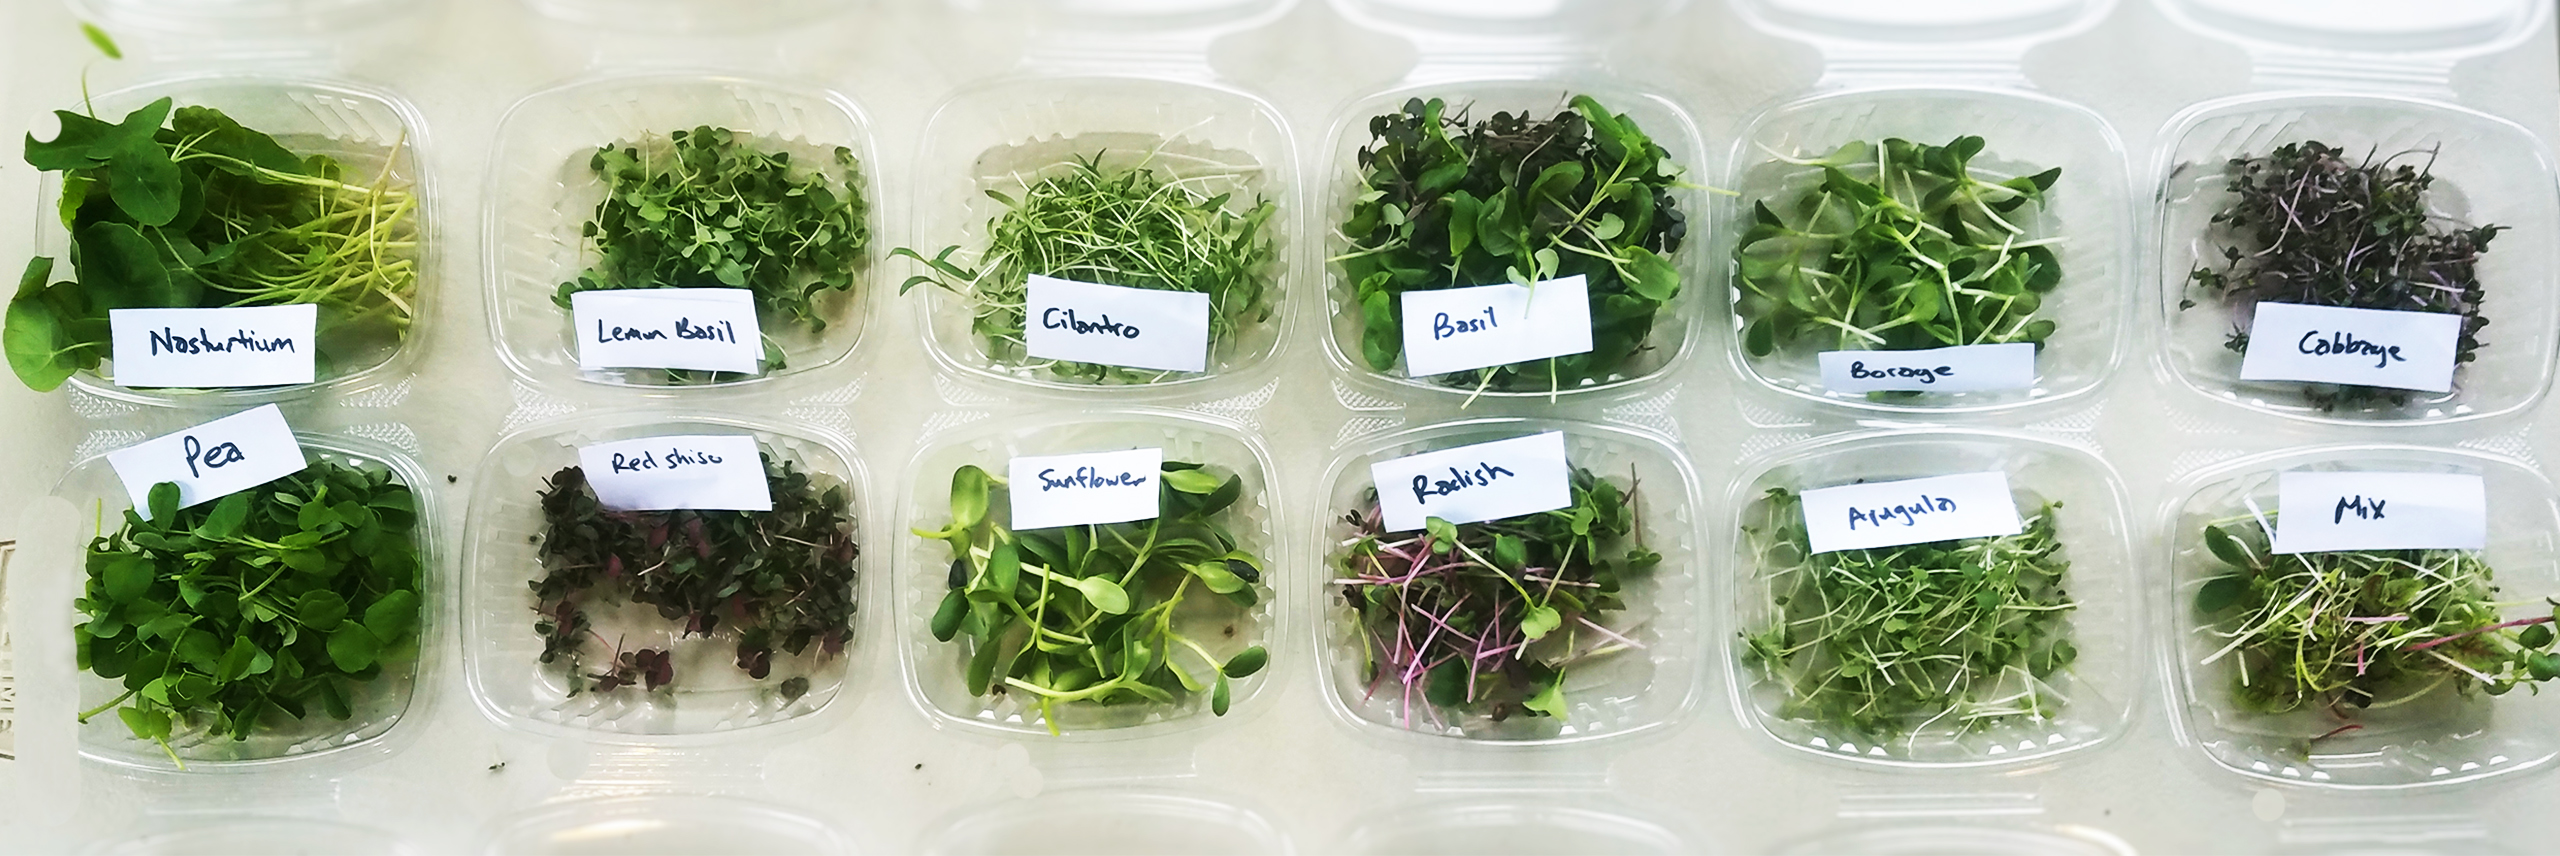 microgreen packages